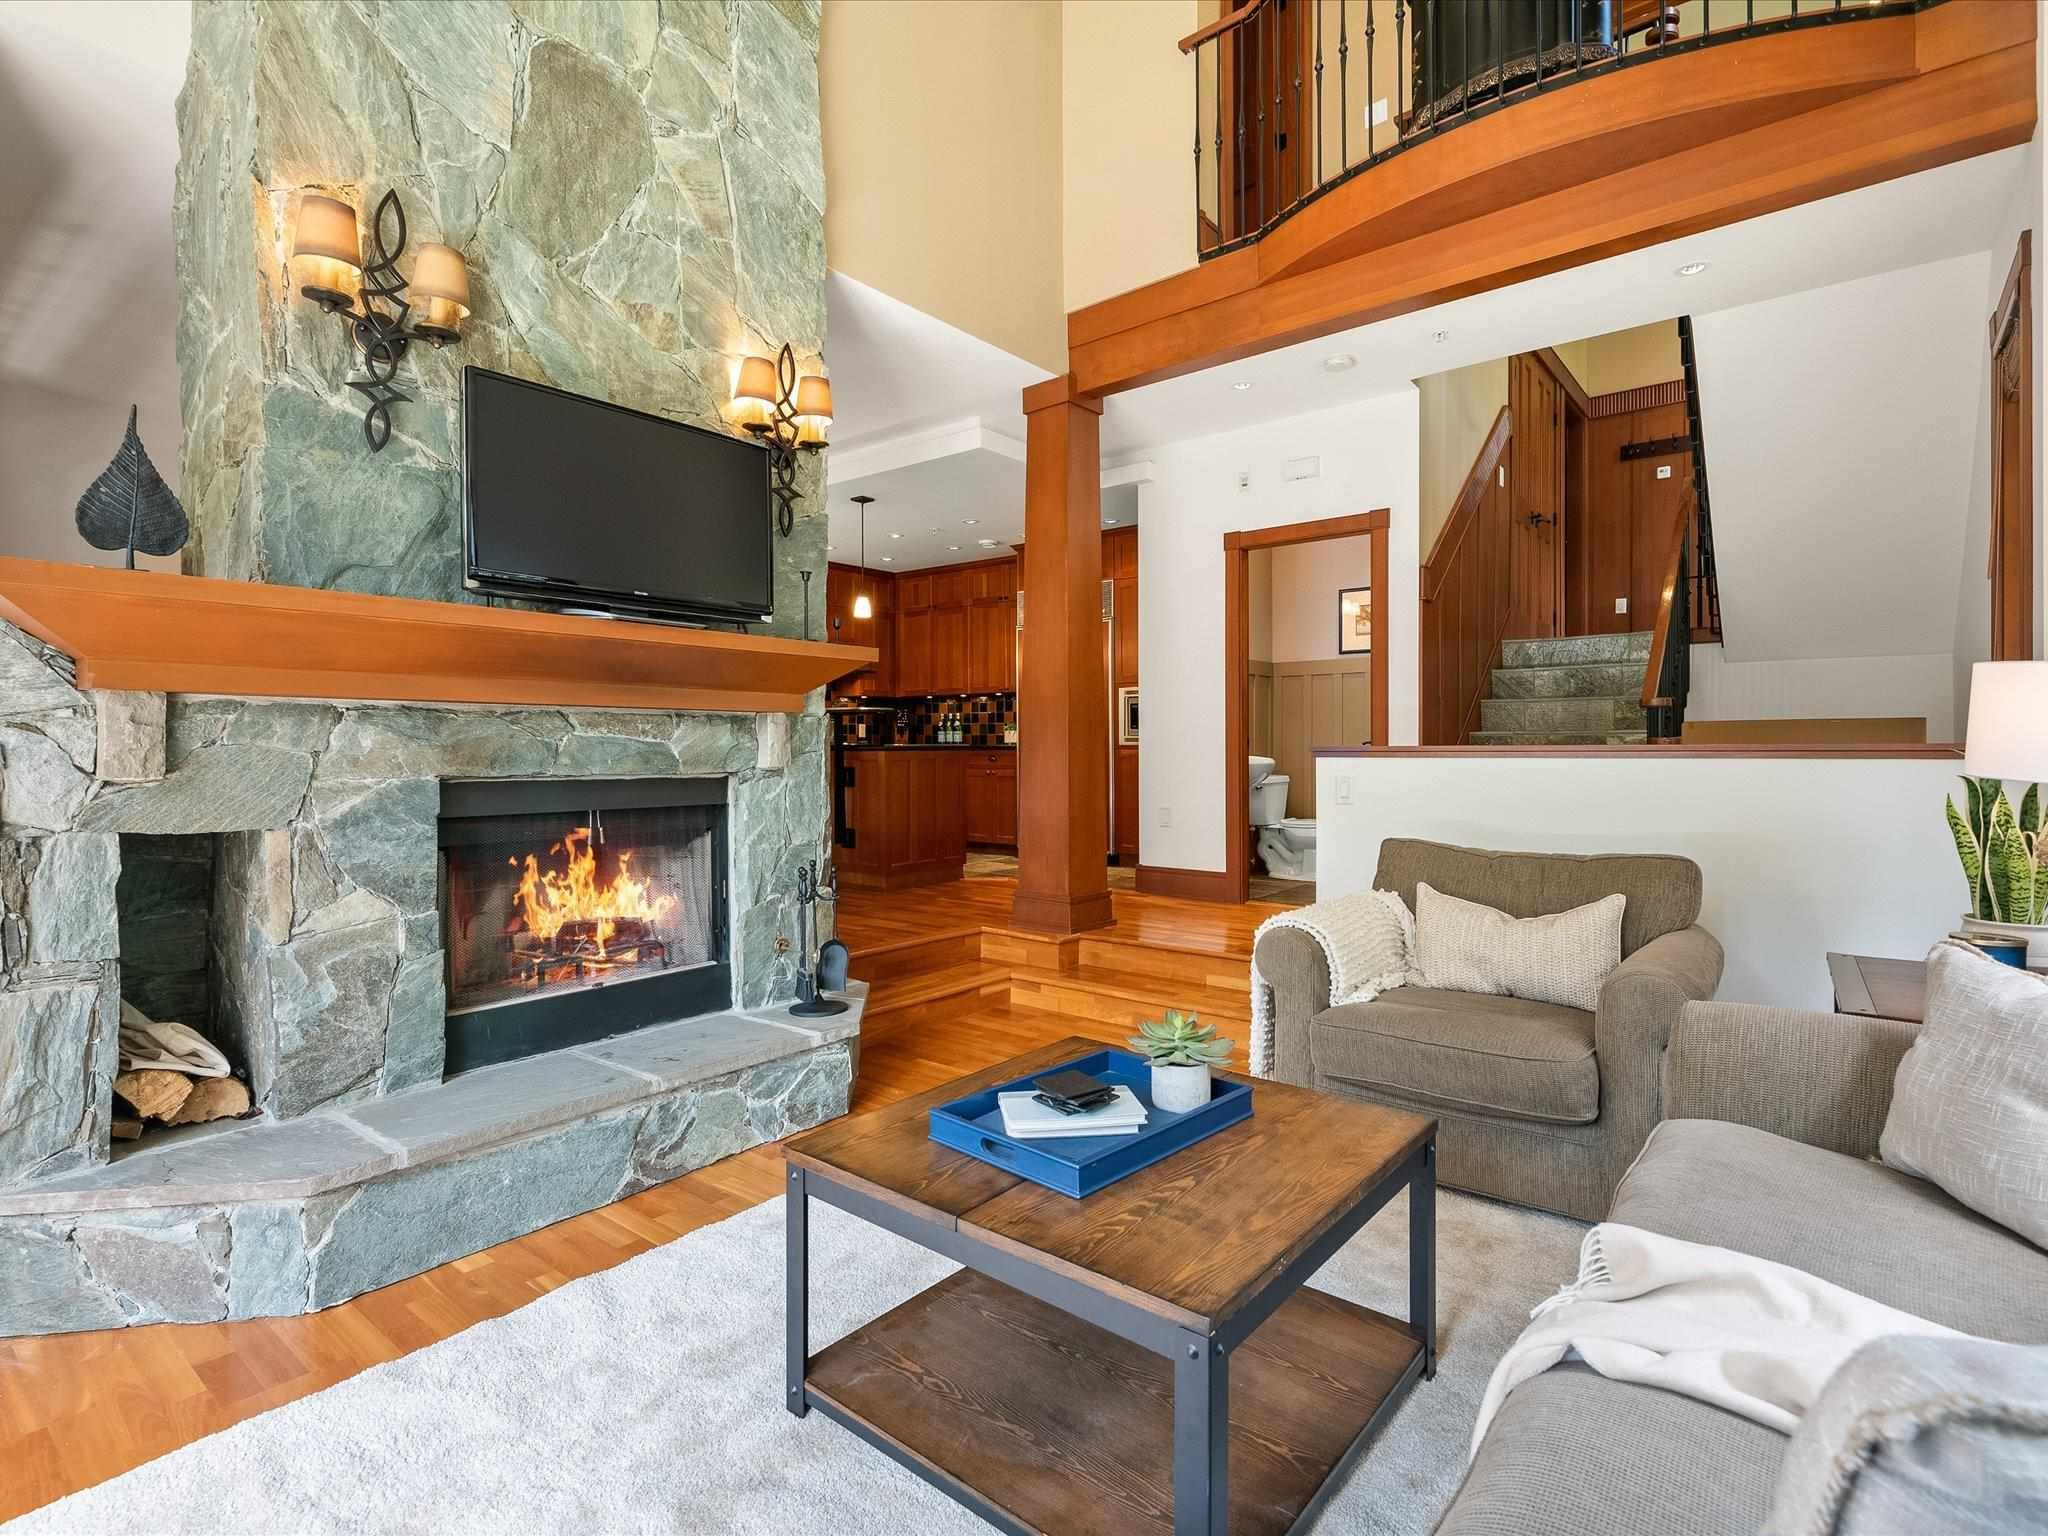 Photo 3: Photos: 4 2500 TALUSWOOD PLACE in Whistler: Nordic Townhouse for sale : MLS®# R2593995